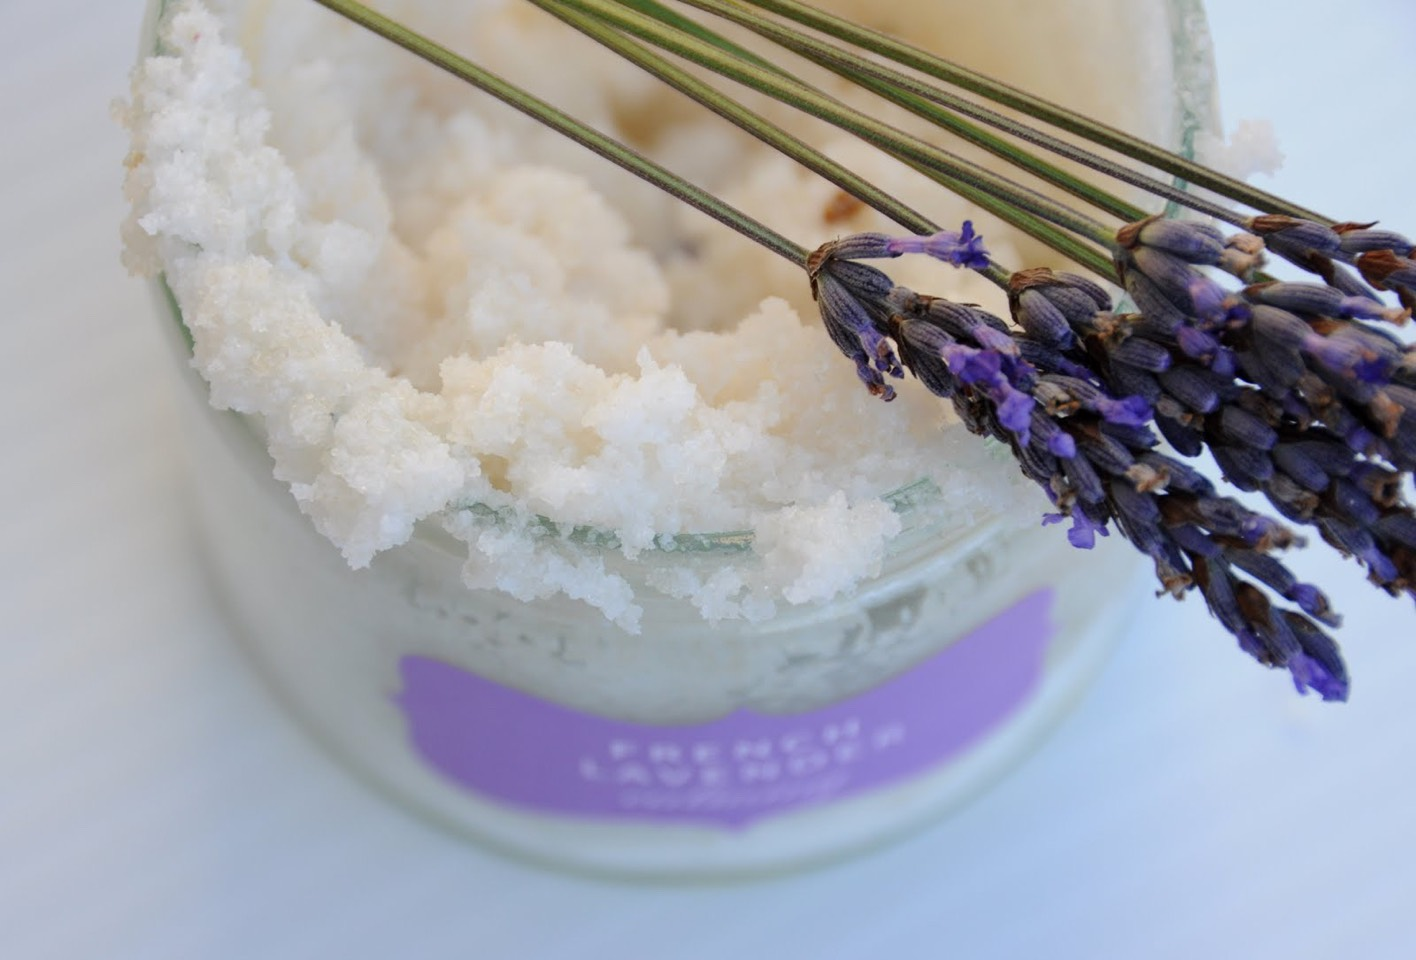 This last DIY body scrub is perfect for those days you just want to take a relaxing bath and wind down. It's the lavender salt body scrub! The ingredients you'll need are: •Dried lavender (optional)  •Lavender essential oil (for fragrance) •Sea salt  •Coconut oil